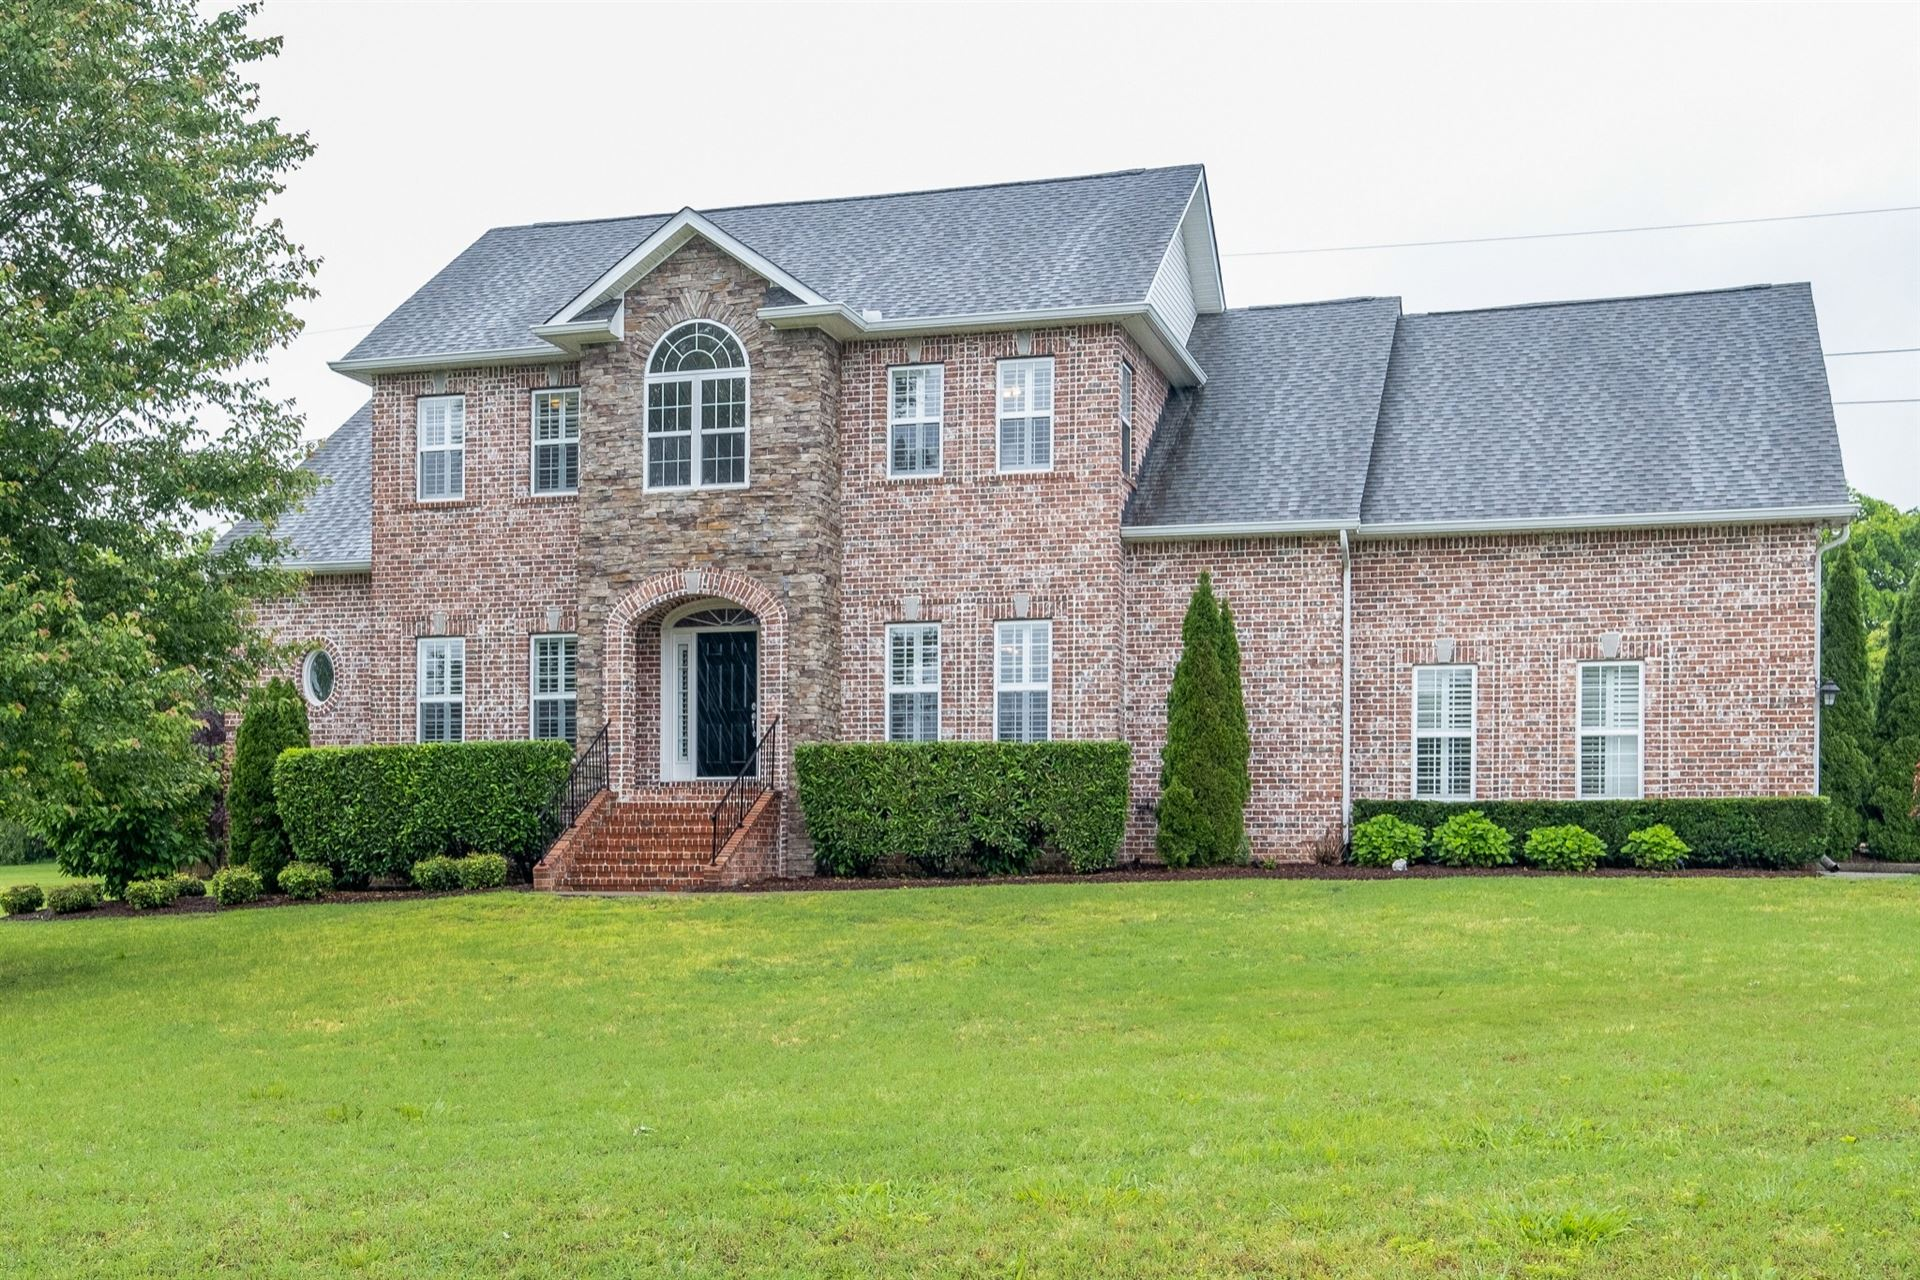 Photo of 2819 Cale Ct, Franklin, TN 37064 (MLS # 2156140)